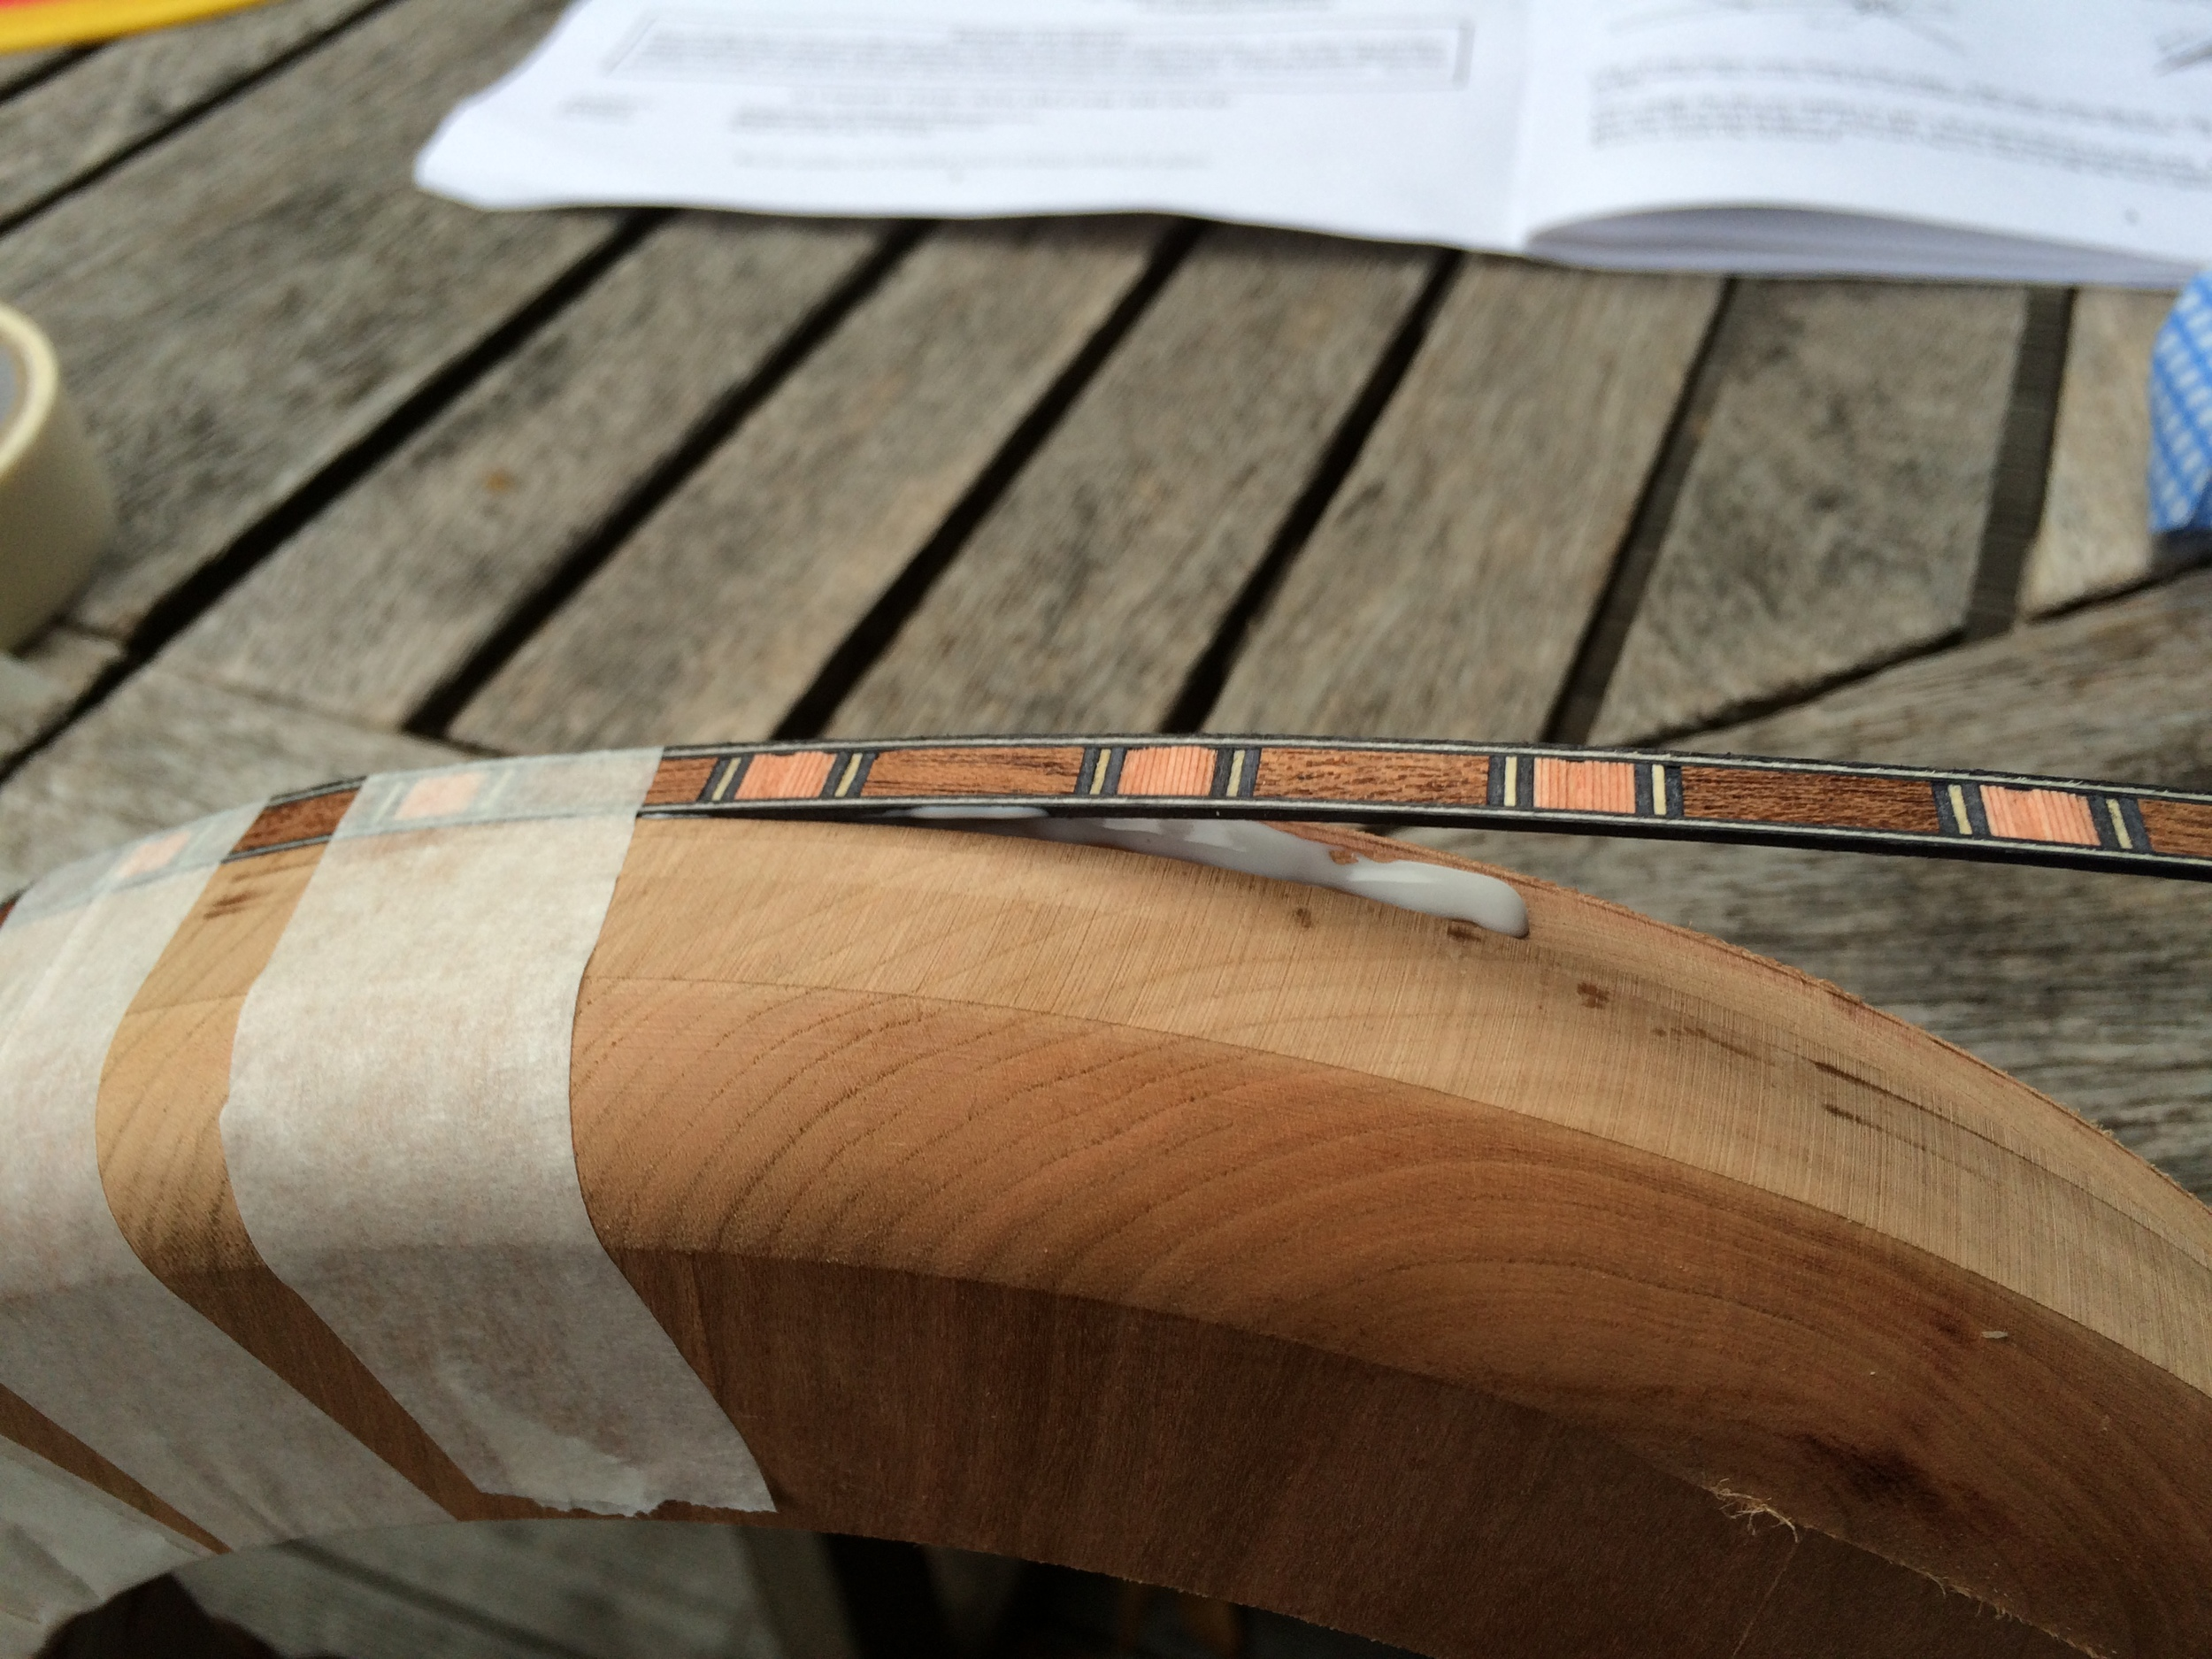 Glueing the banding